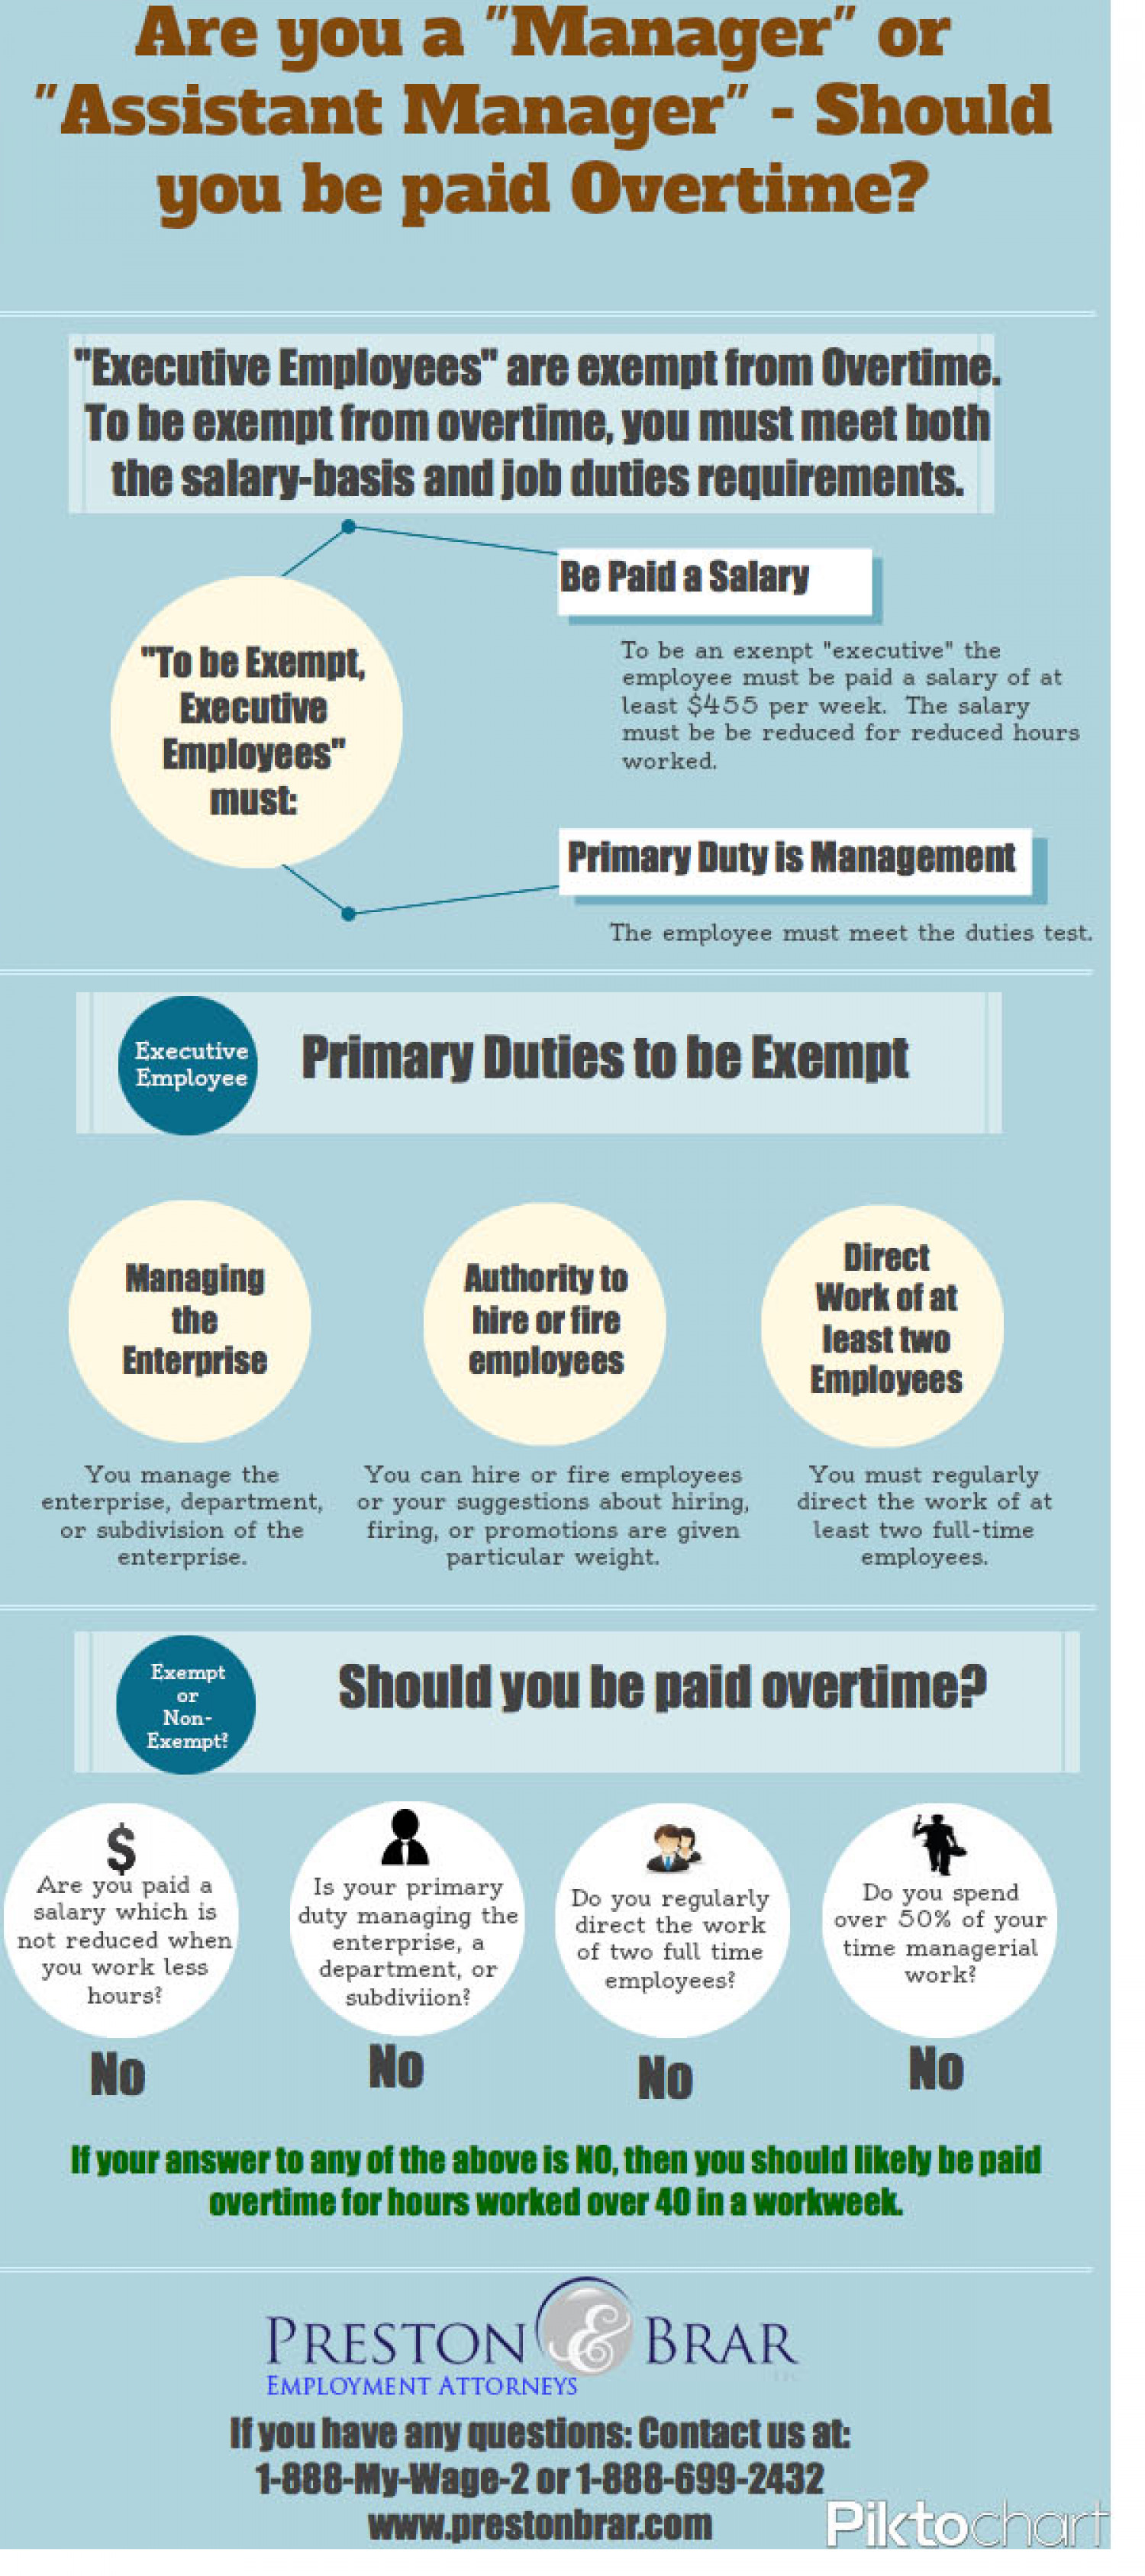 Should Managers Get Paid Overtime? Infographic